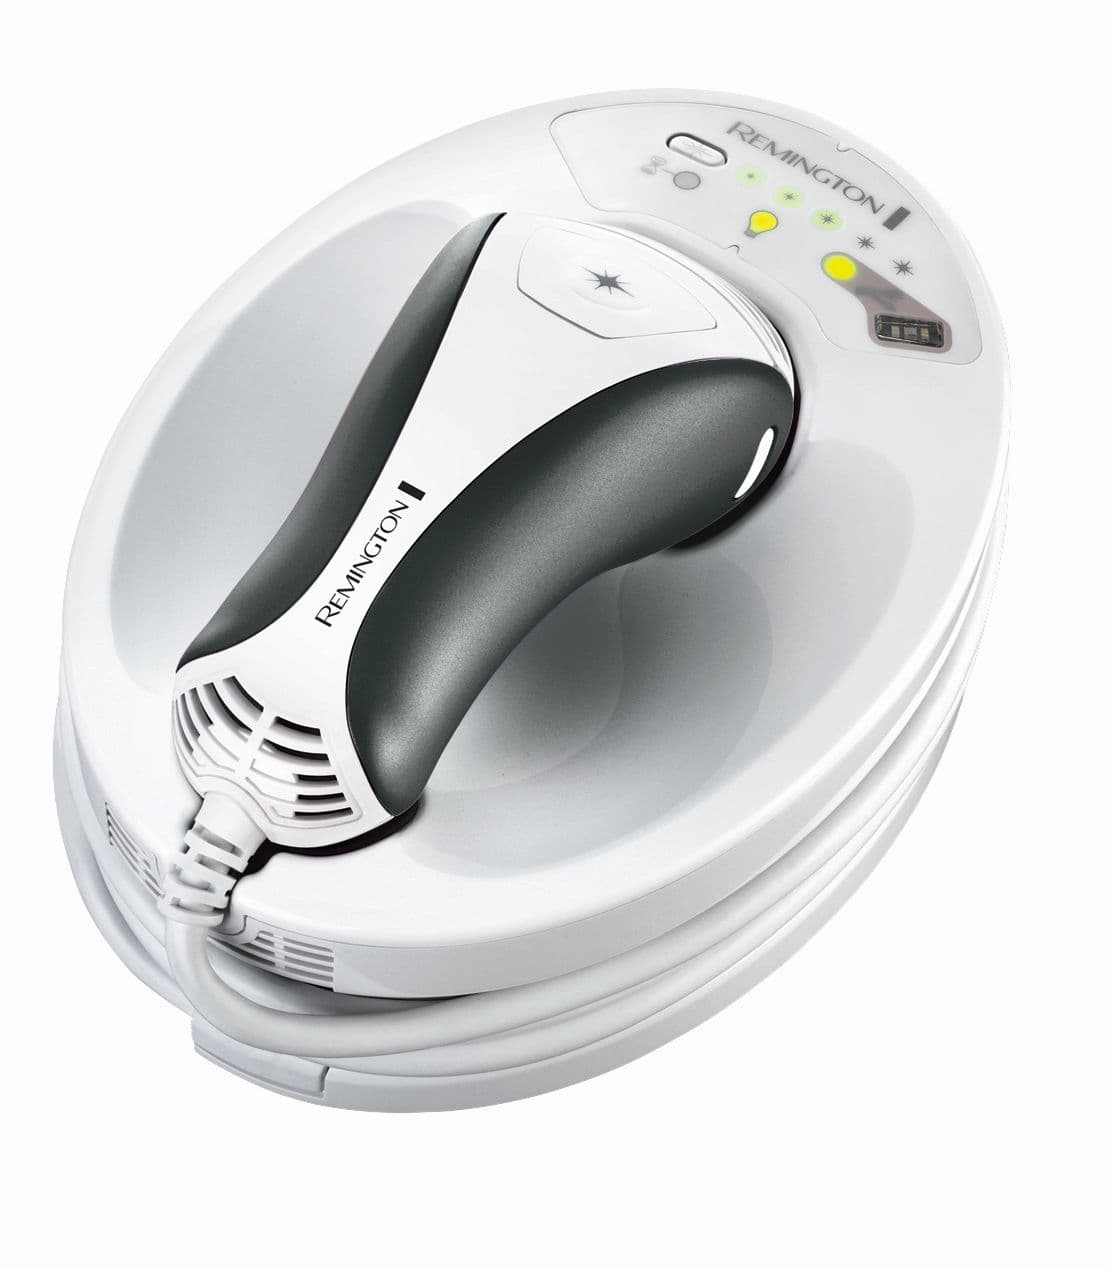 Remington IPL6250 für 199,99 Euro